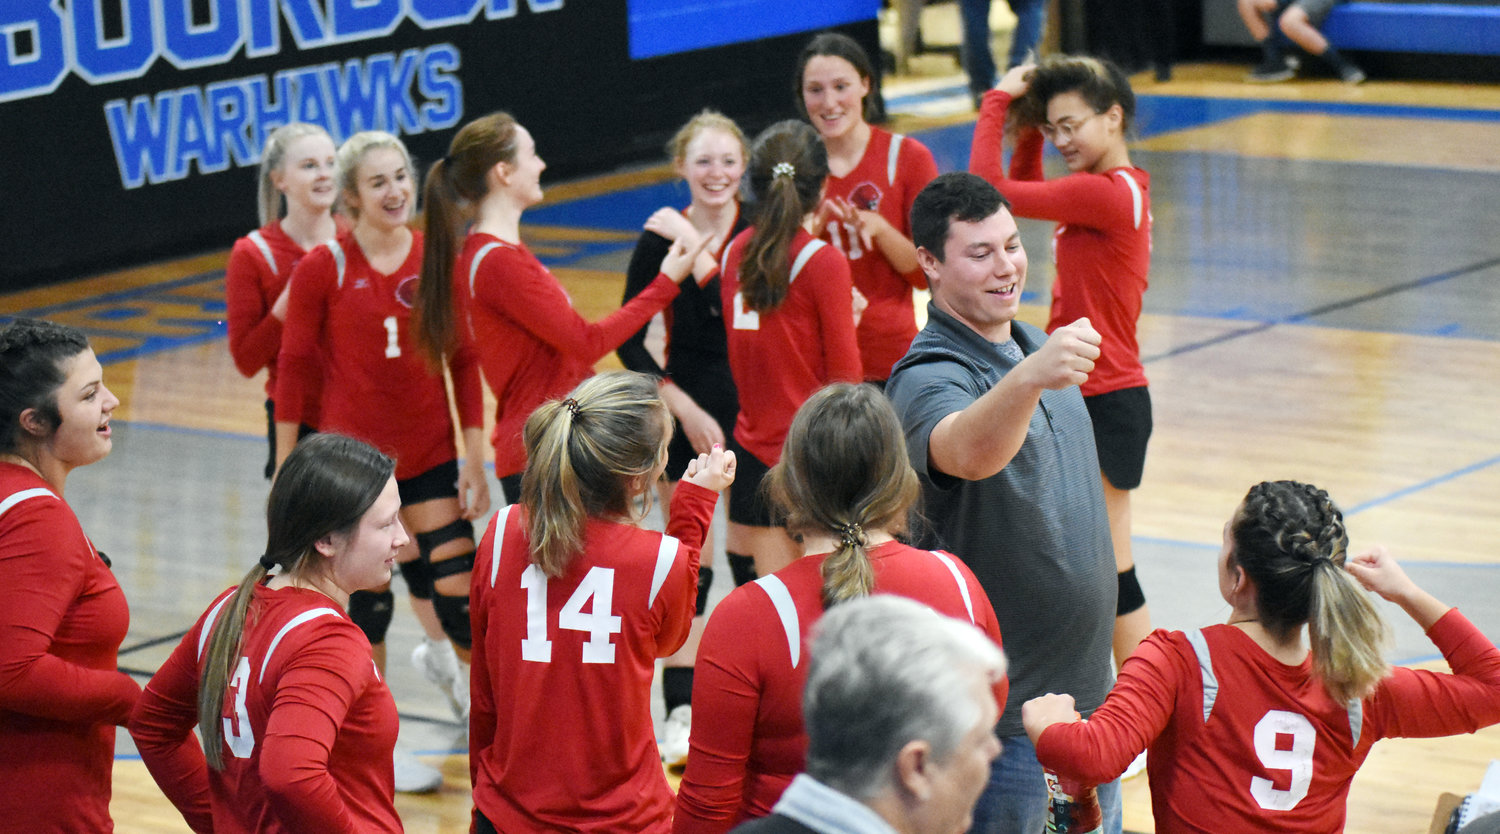 Lady Tiger volleyball coach Evin Farris (above, center) fist bumps Mea Jones (9) while celebrating Belle's first district championship since 2003 following their victory in three sets last Tuesday over Linn in the MSHSAA Class 2, District 7 championship match.